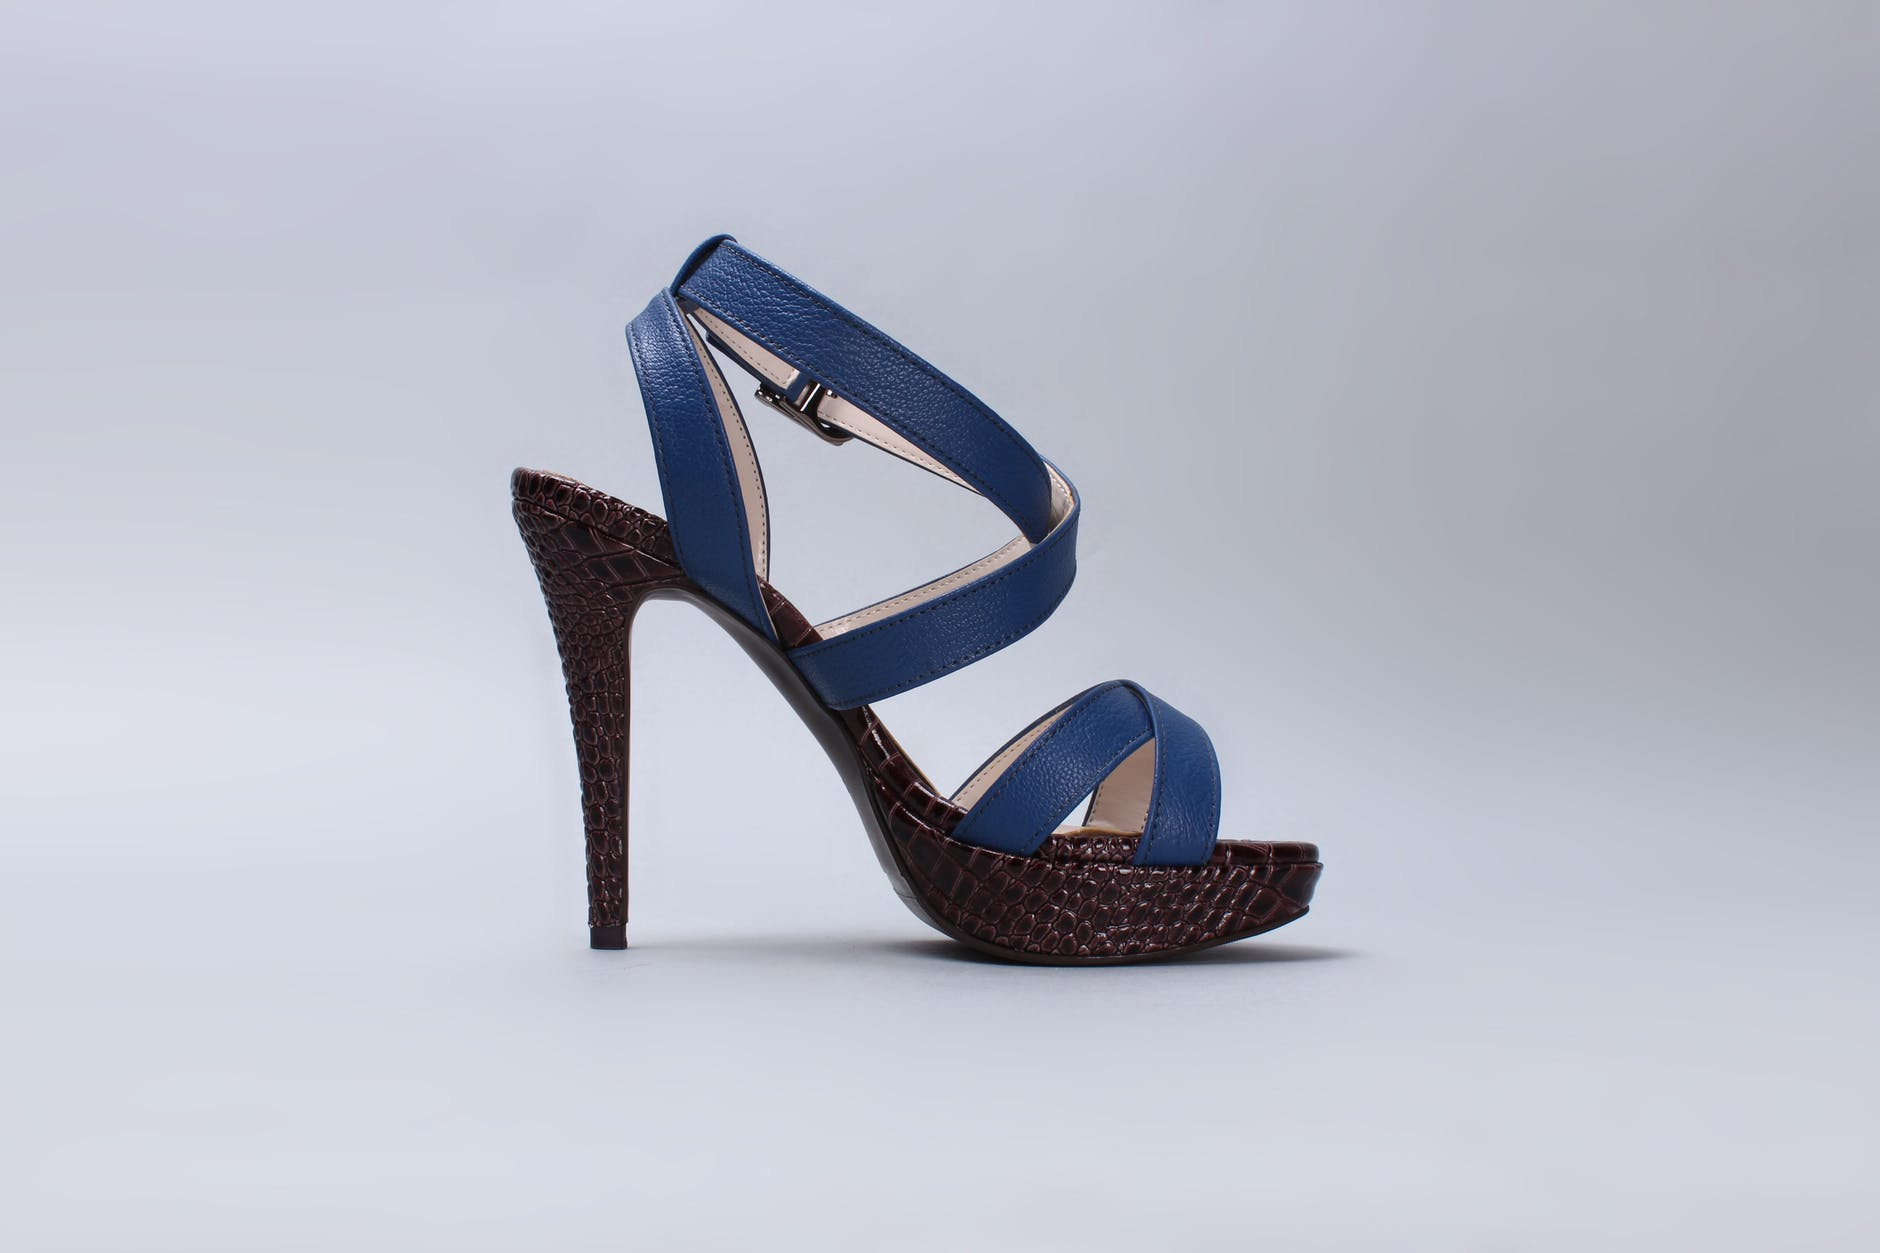 Estatura de las mujeres con tacones (high heels) Sandals-blue-shoes-strap-shoe-40377